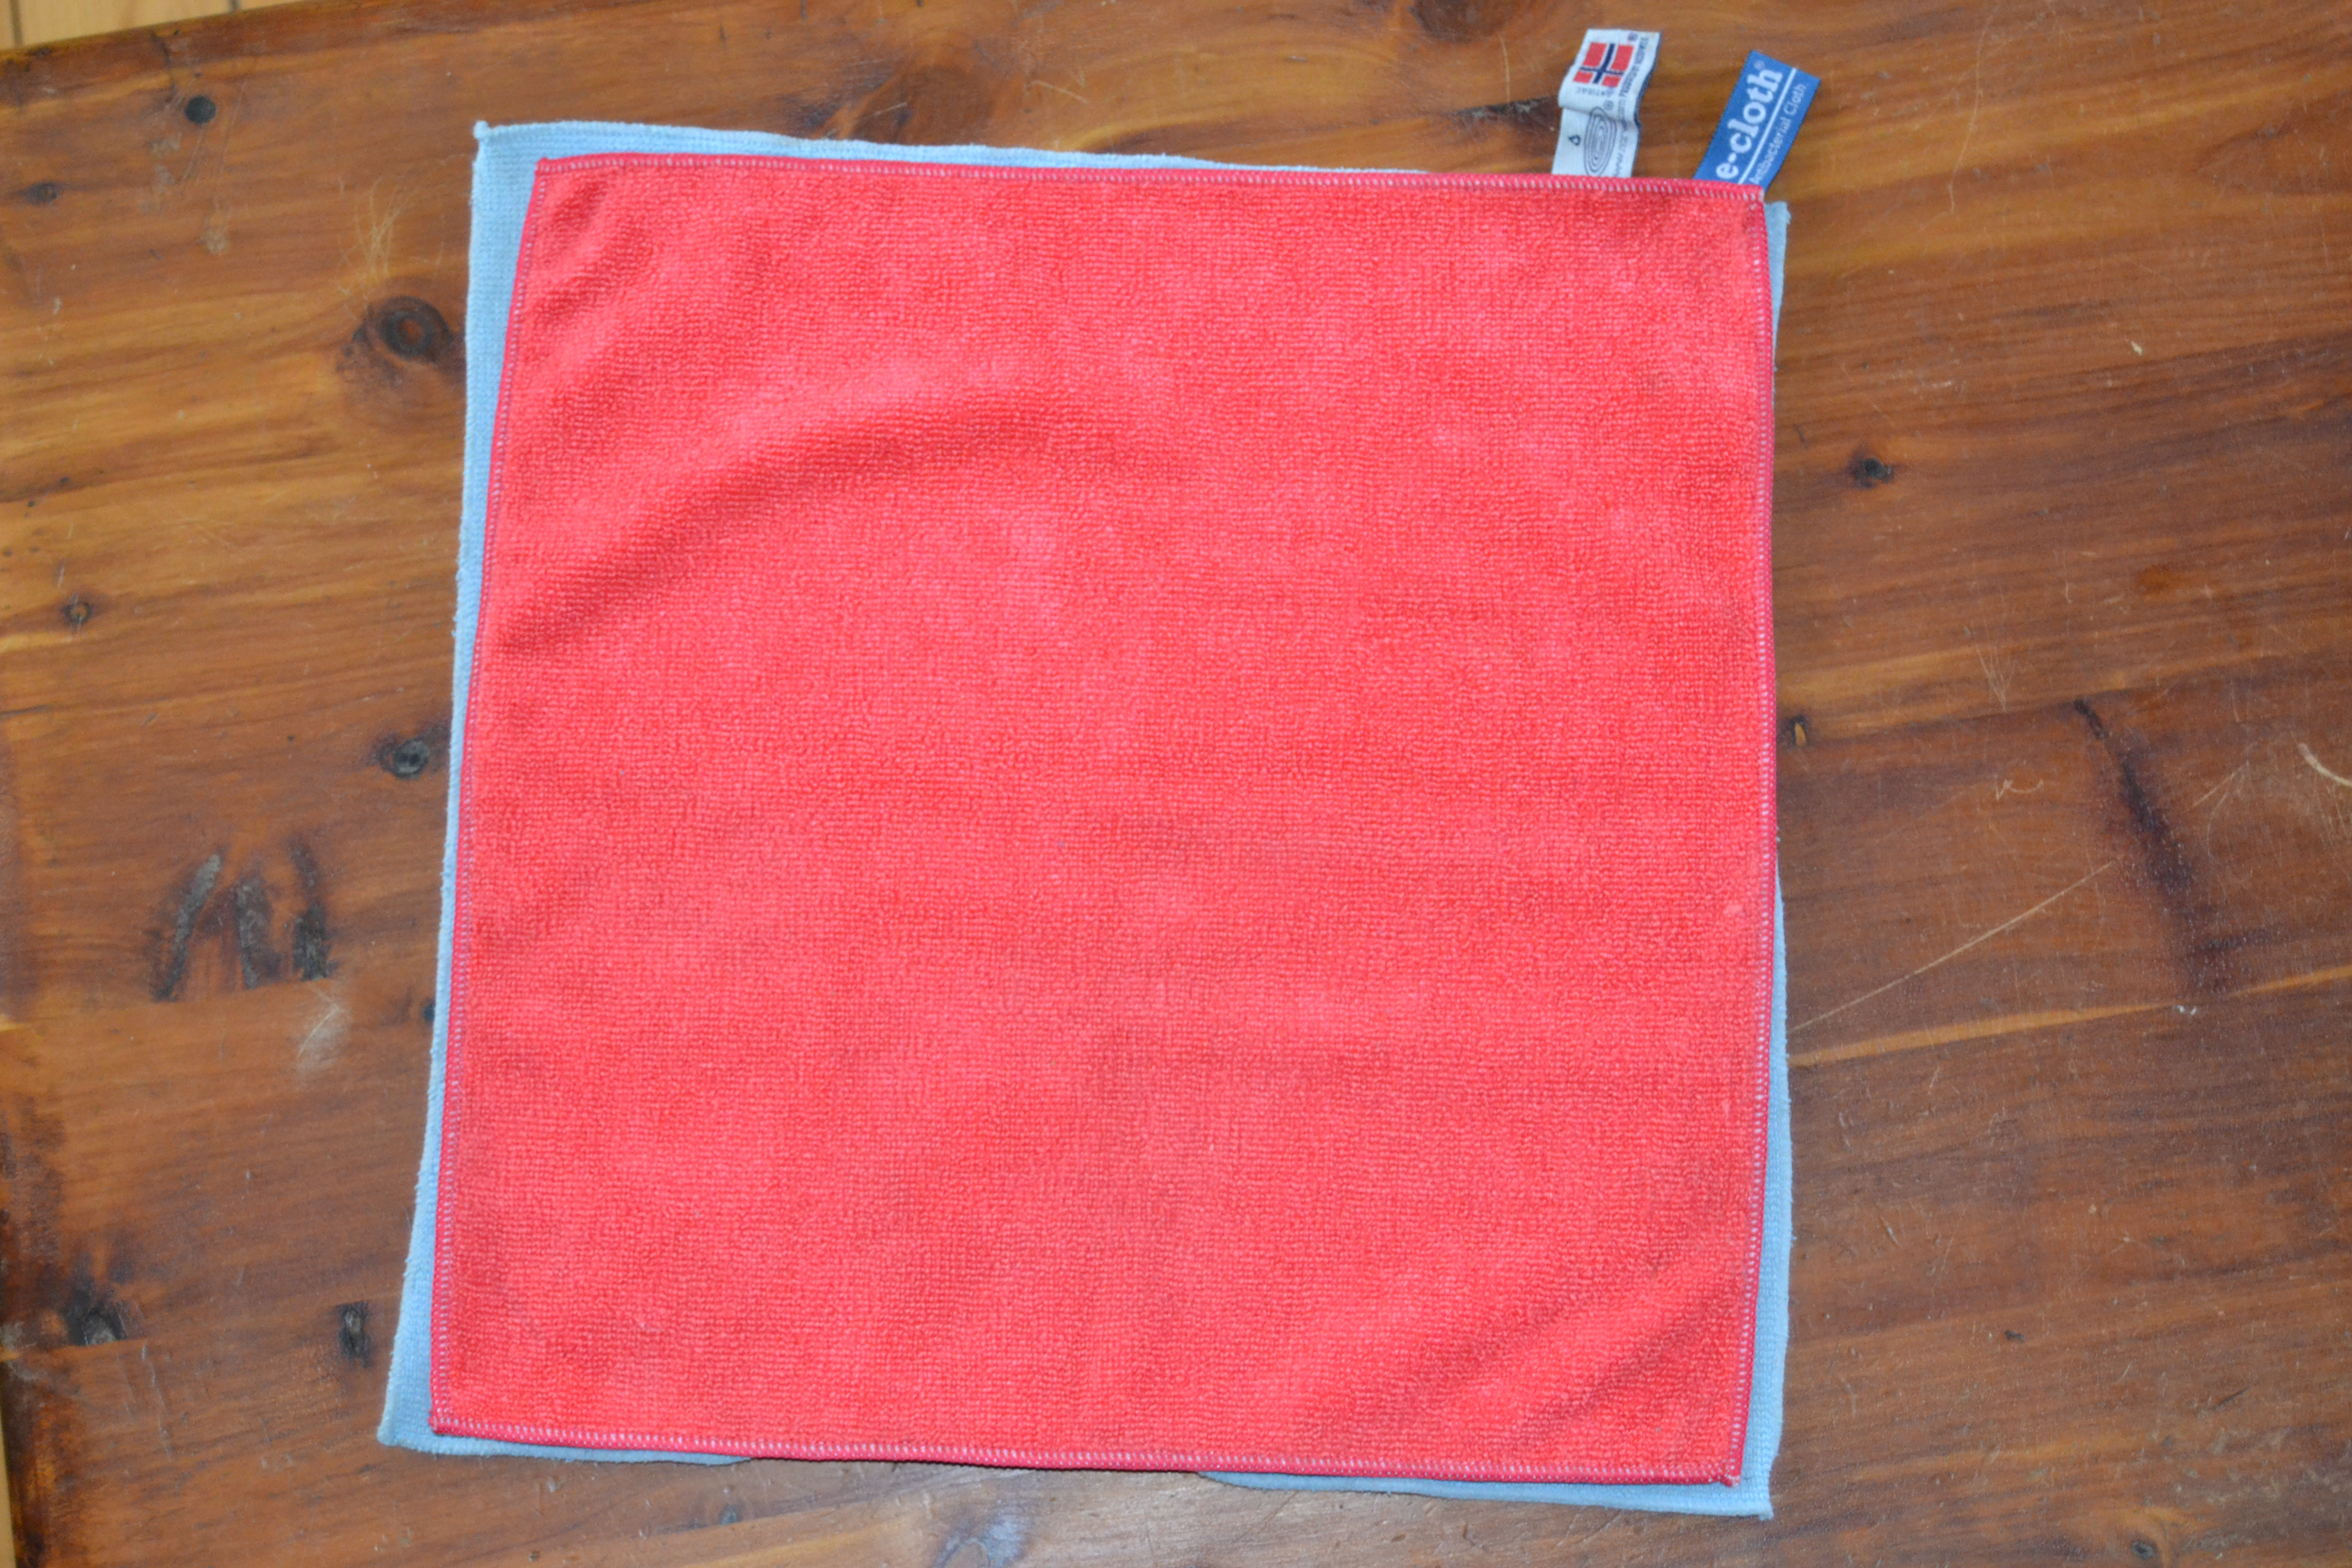 e-cloth ® General Purpose Cloth Versus Norwex Enviro Cloth Review – Which is Better?